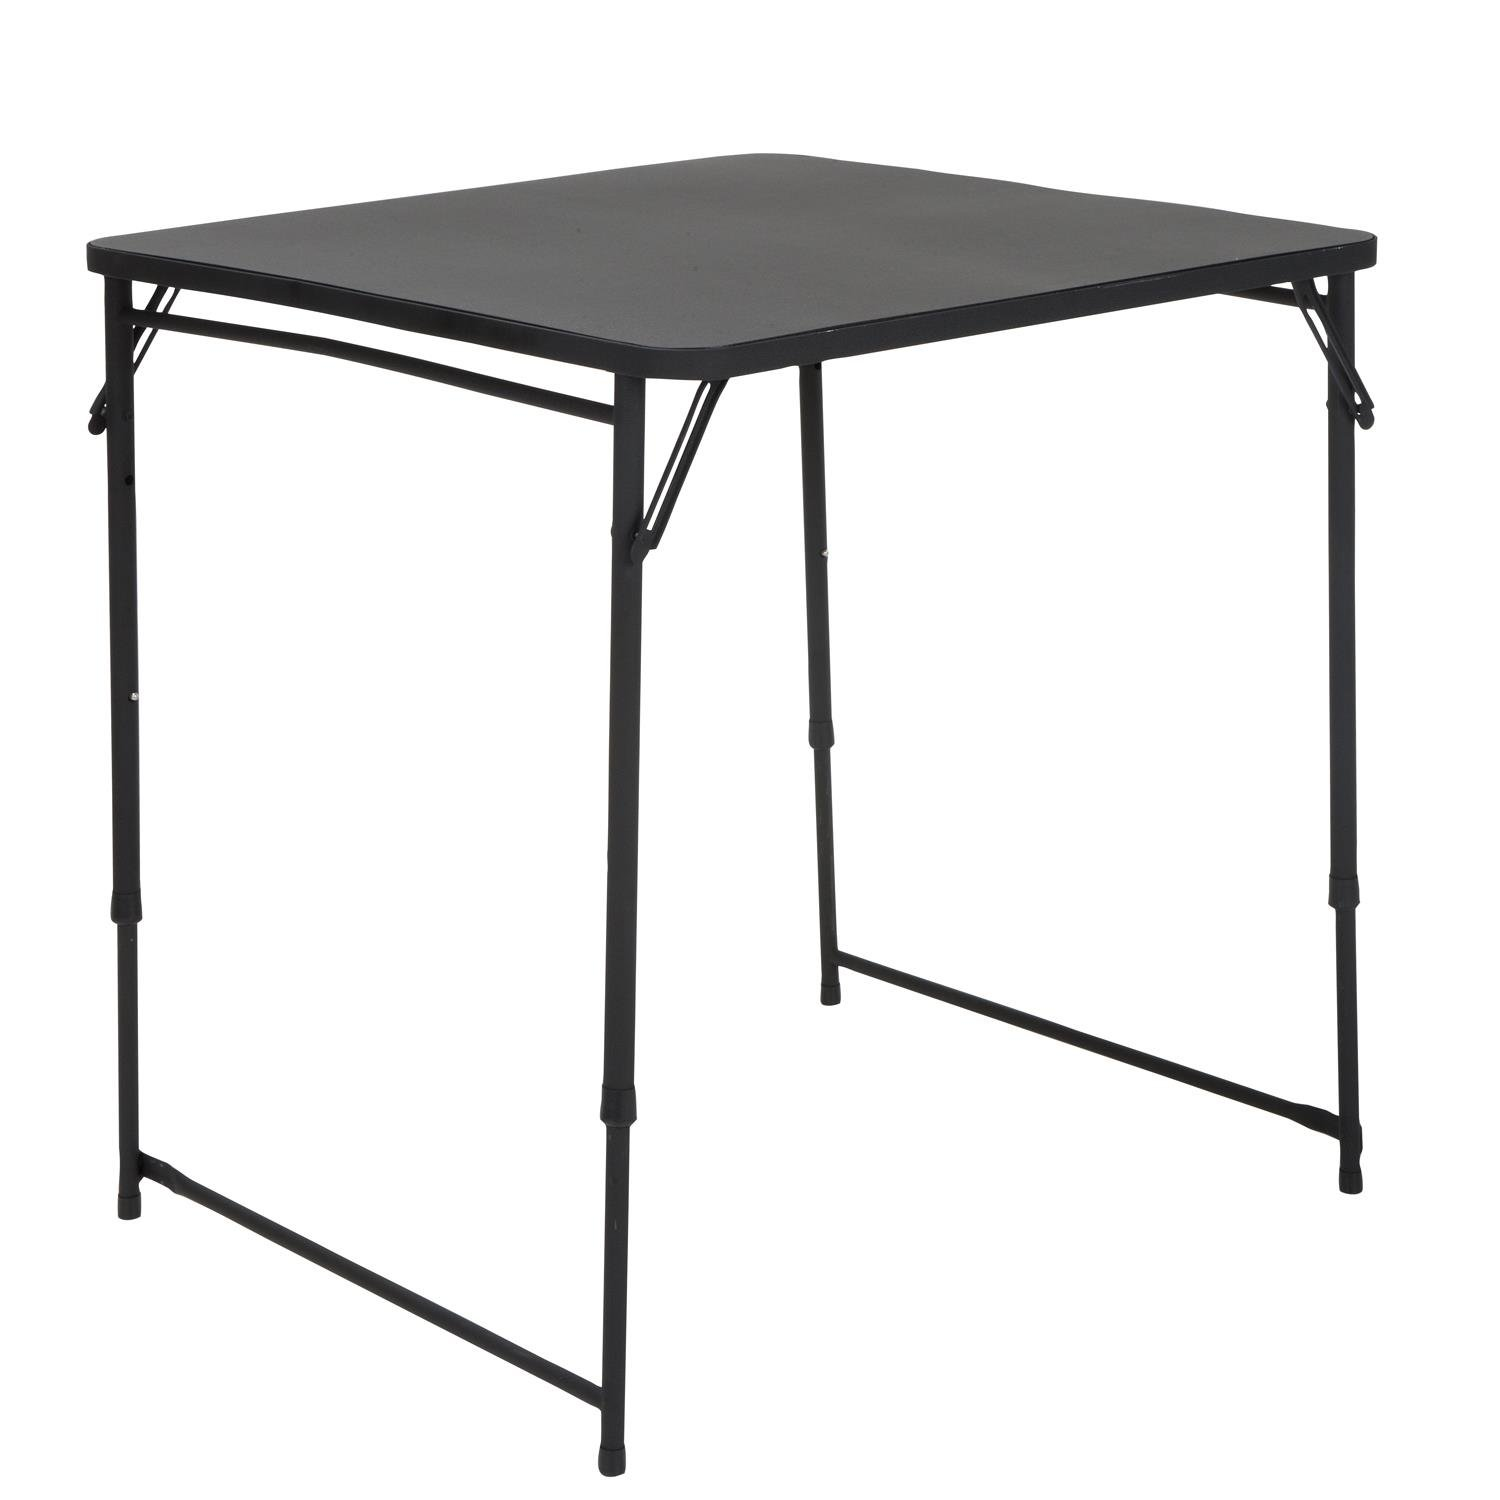 COSCO 34'' Square Adjustable Height PVC Top Table, Black by Cosco Products